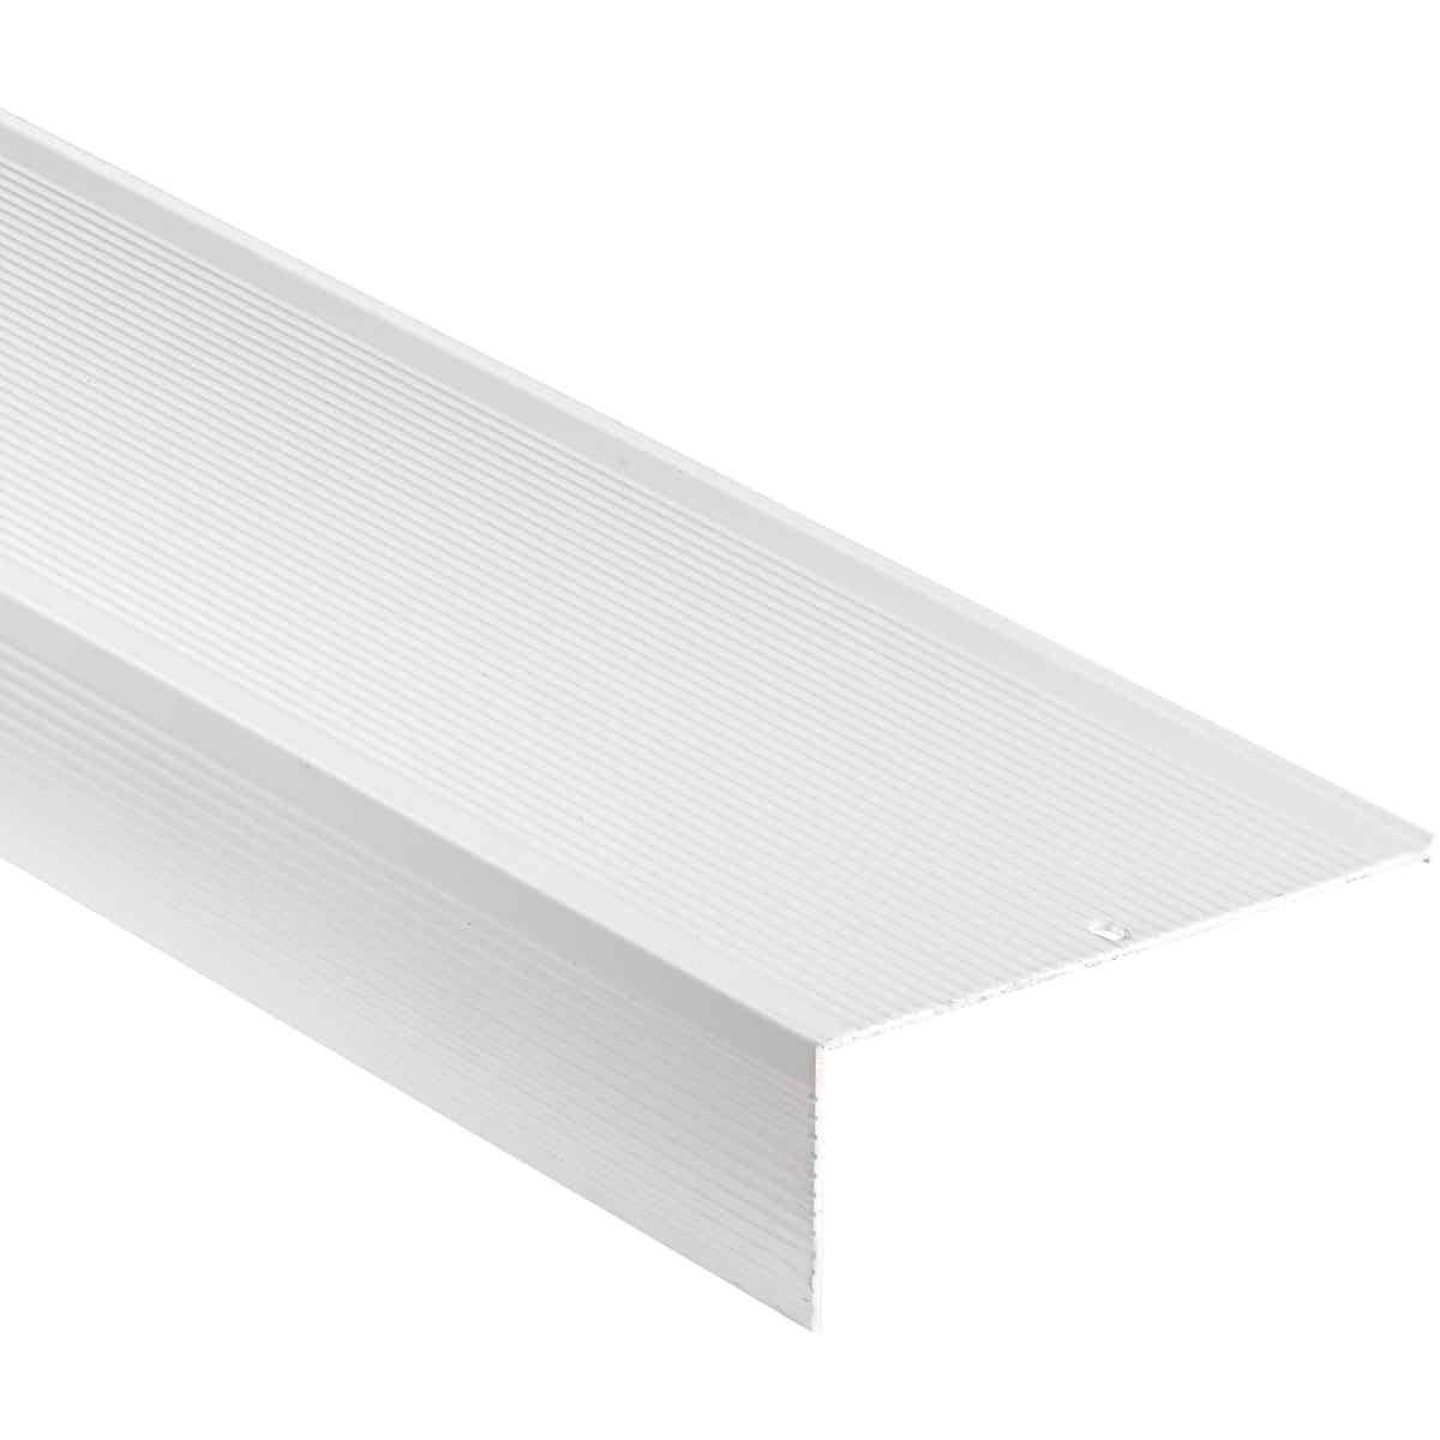 "M-D Ultra White 72"" x 4-1/2"" Sill Nosing Image 1"